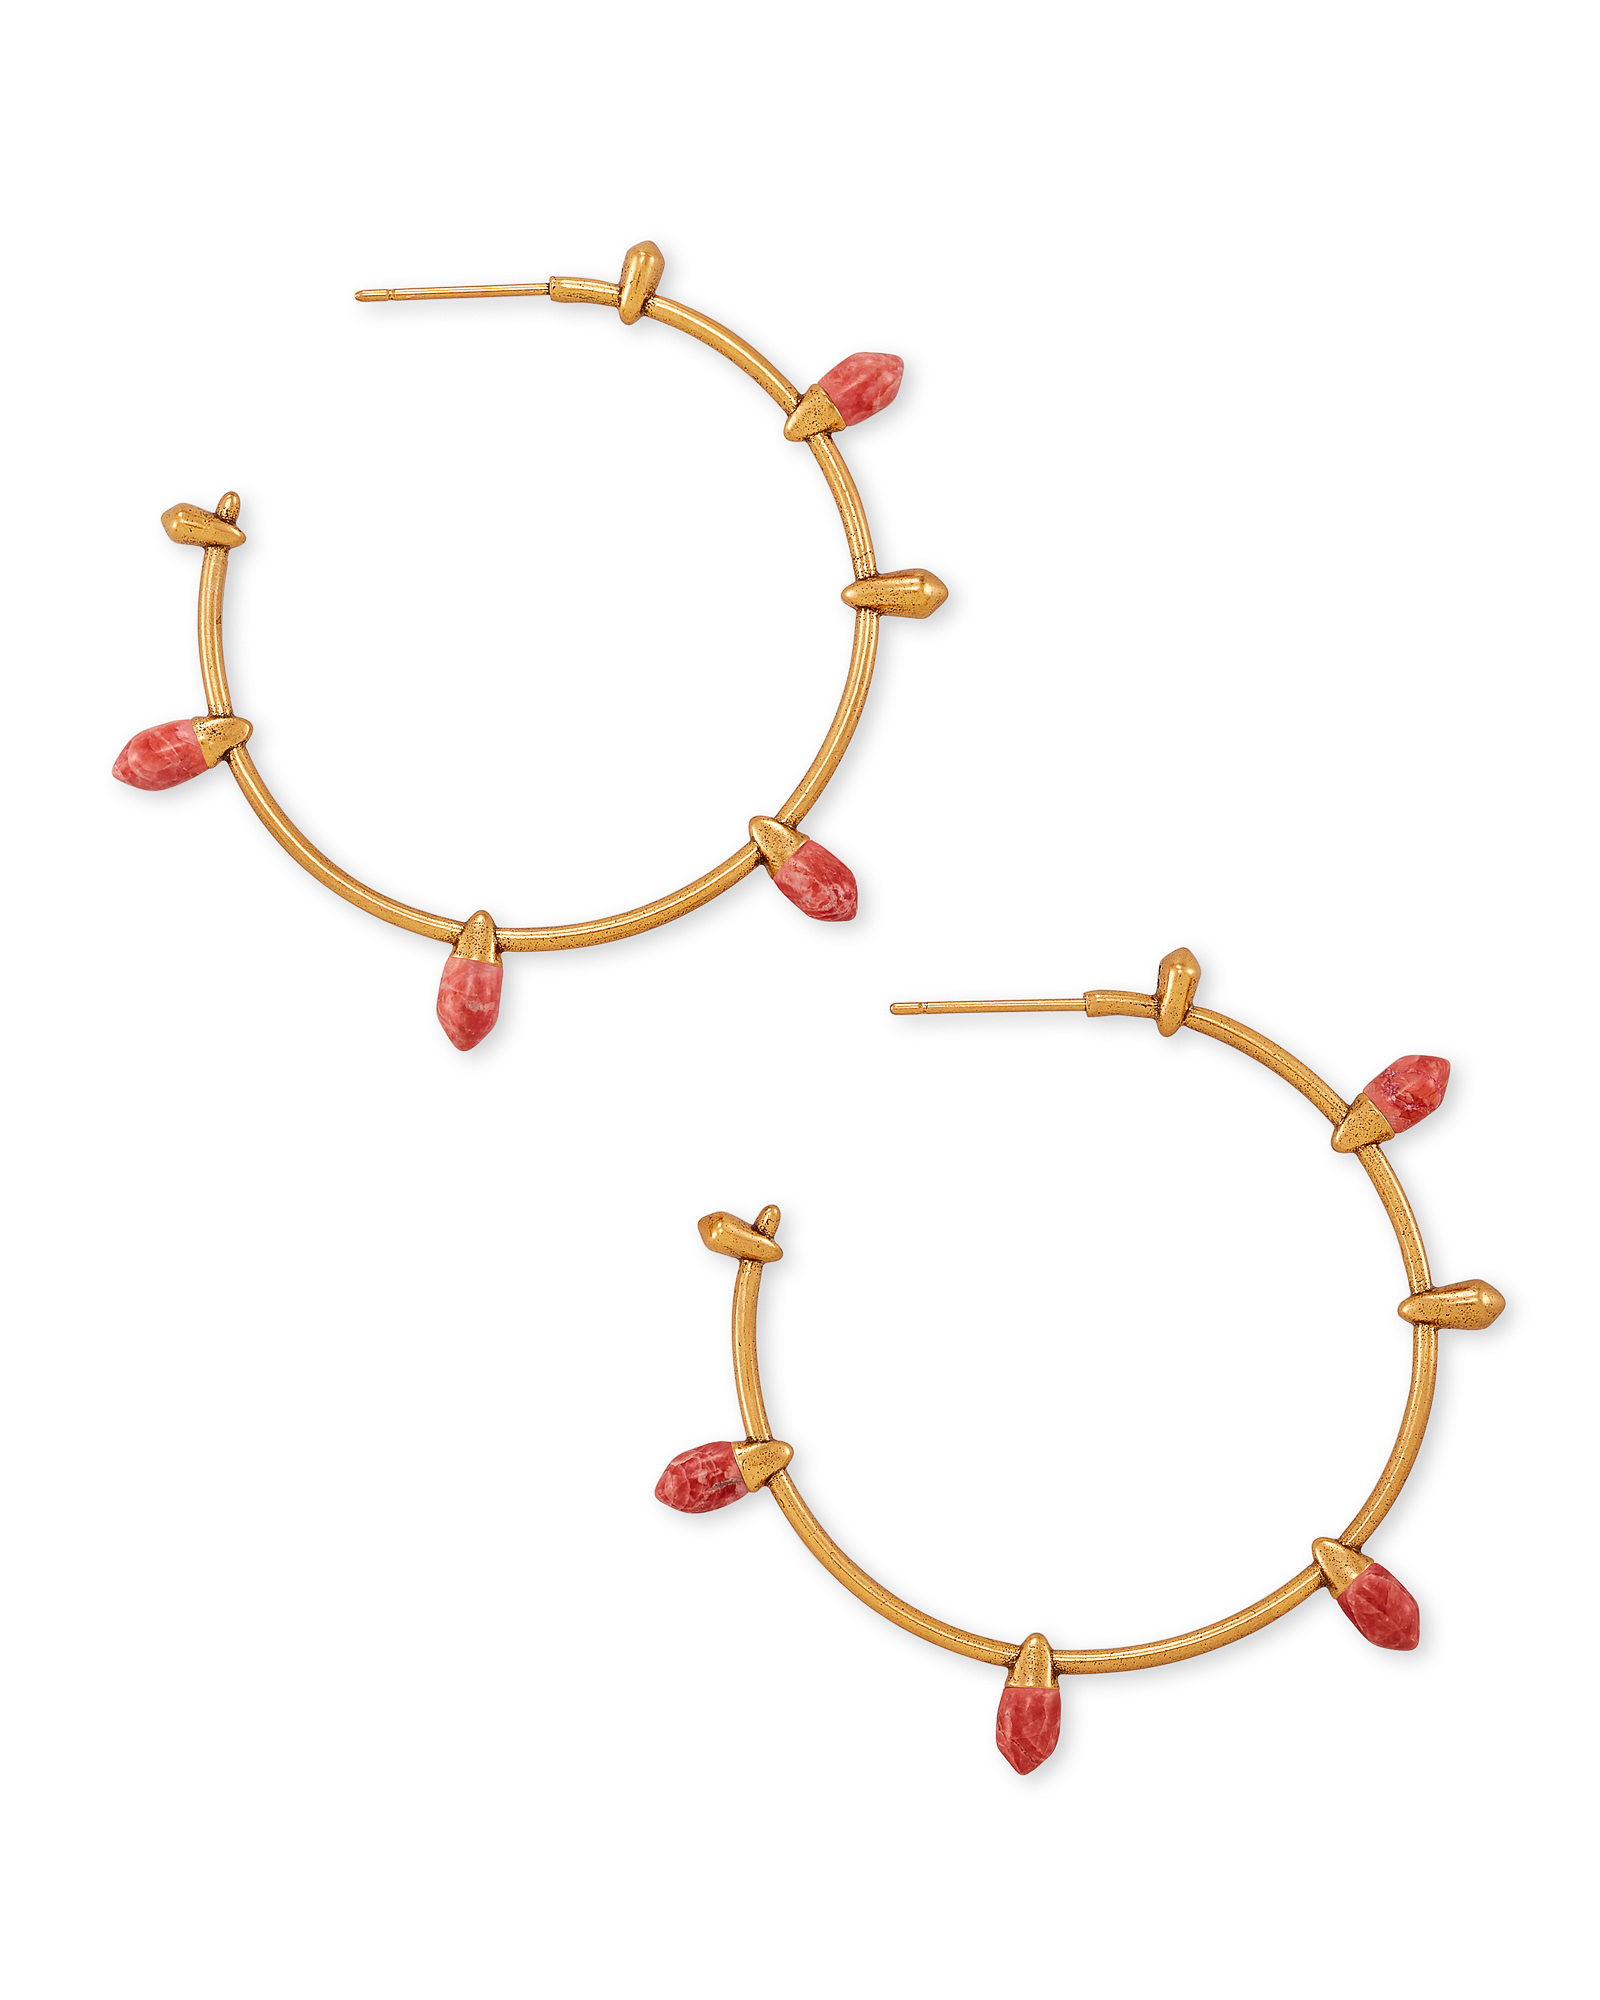 Frieda Vintage Gold Hoop Earrings in Burnt Sienna Howlite